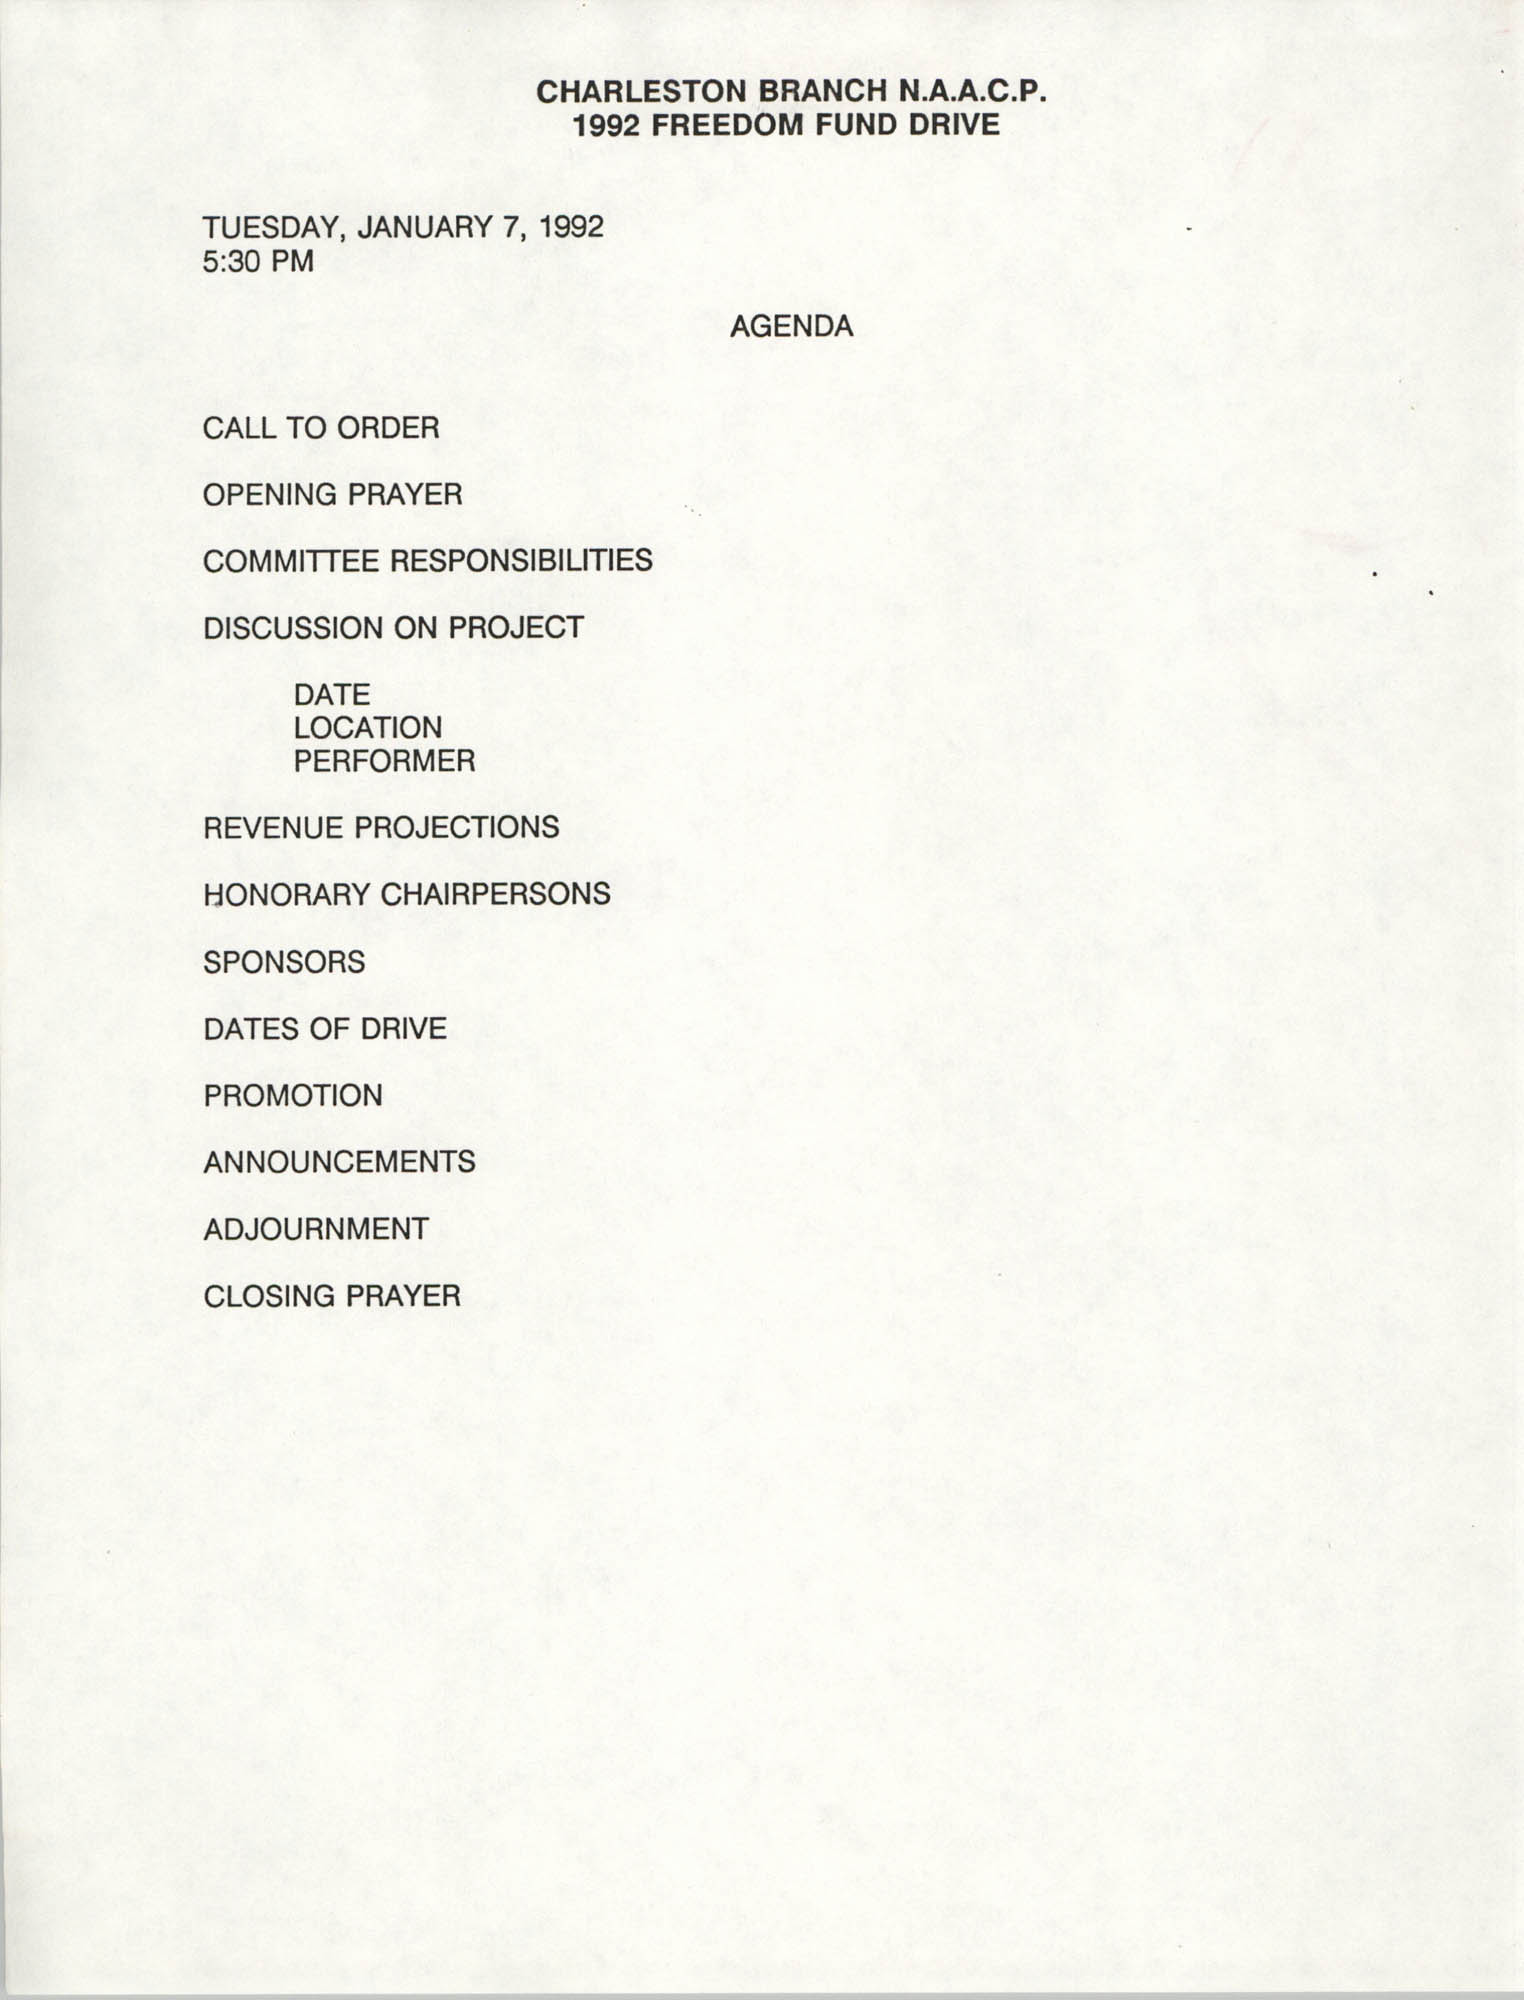 Agenda, Freedom Fund Drive, National Association for the Advancement of Colored People, January 7, 1992